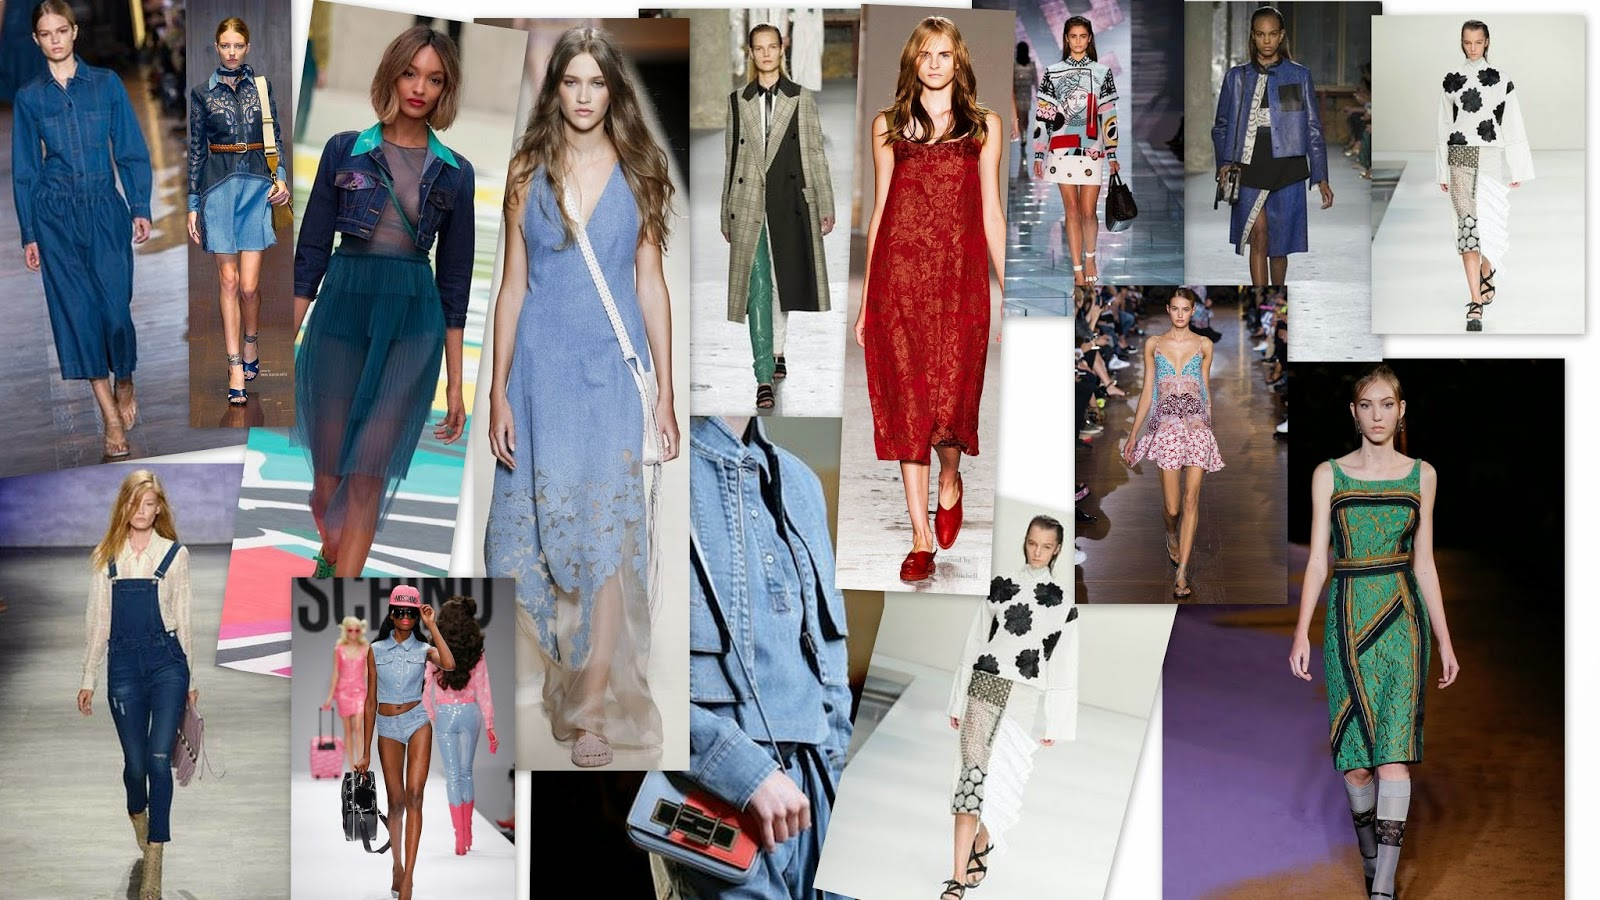 Spring/Summer Womenswear Catwalk Trend Report 2015